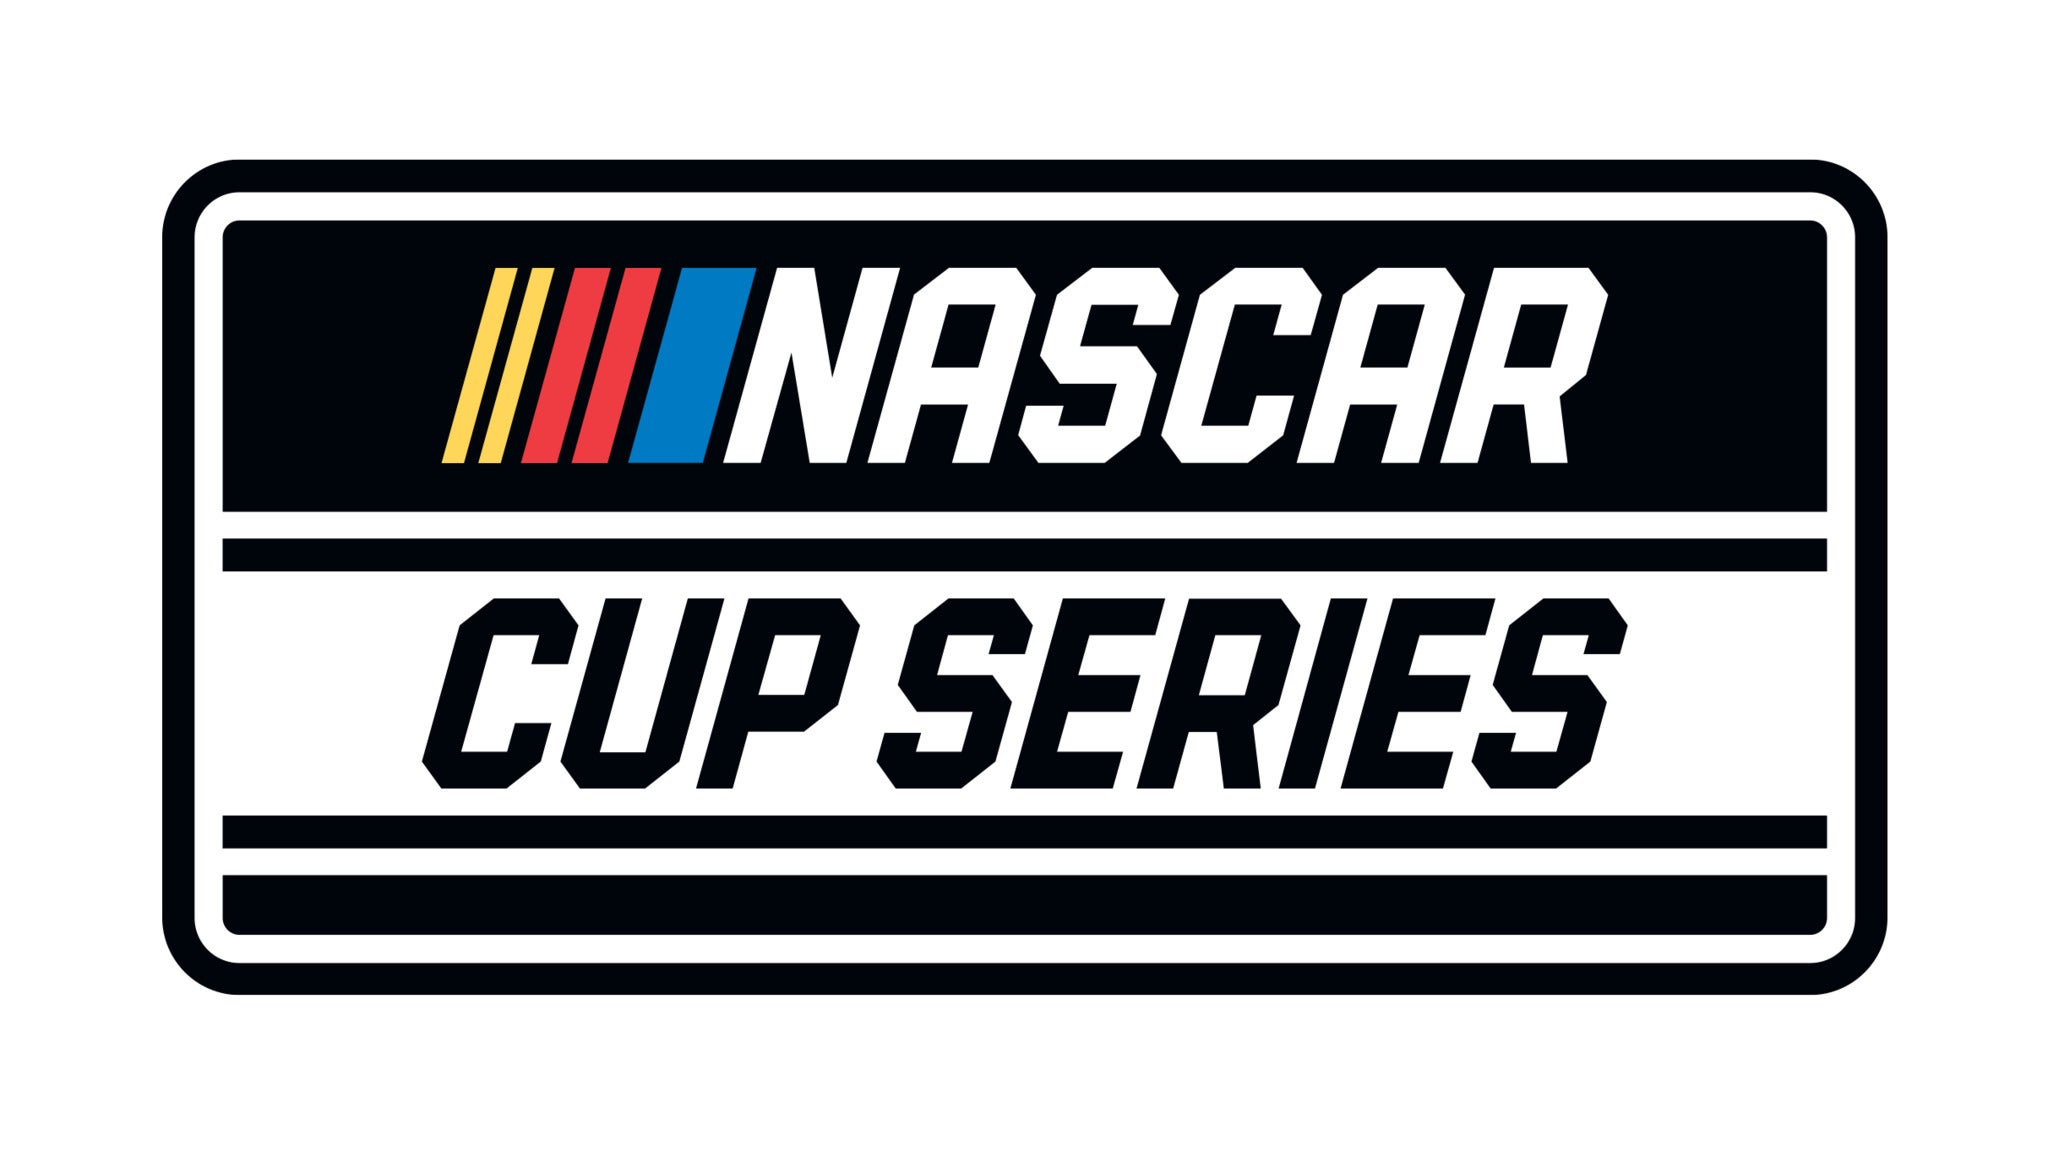 NASCAR Cup Series